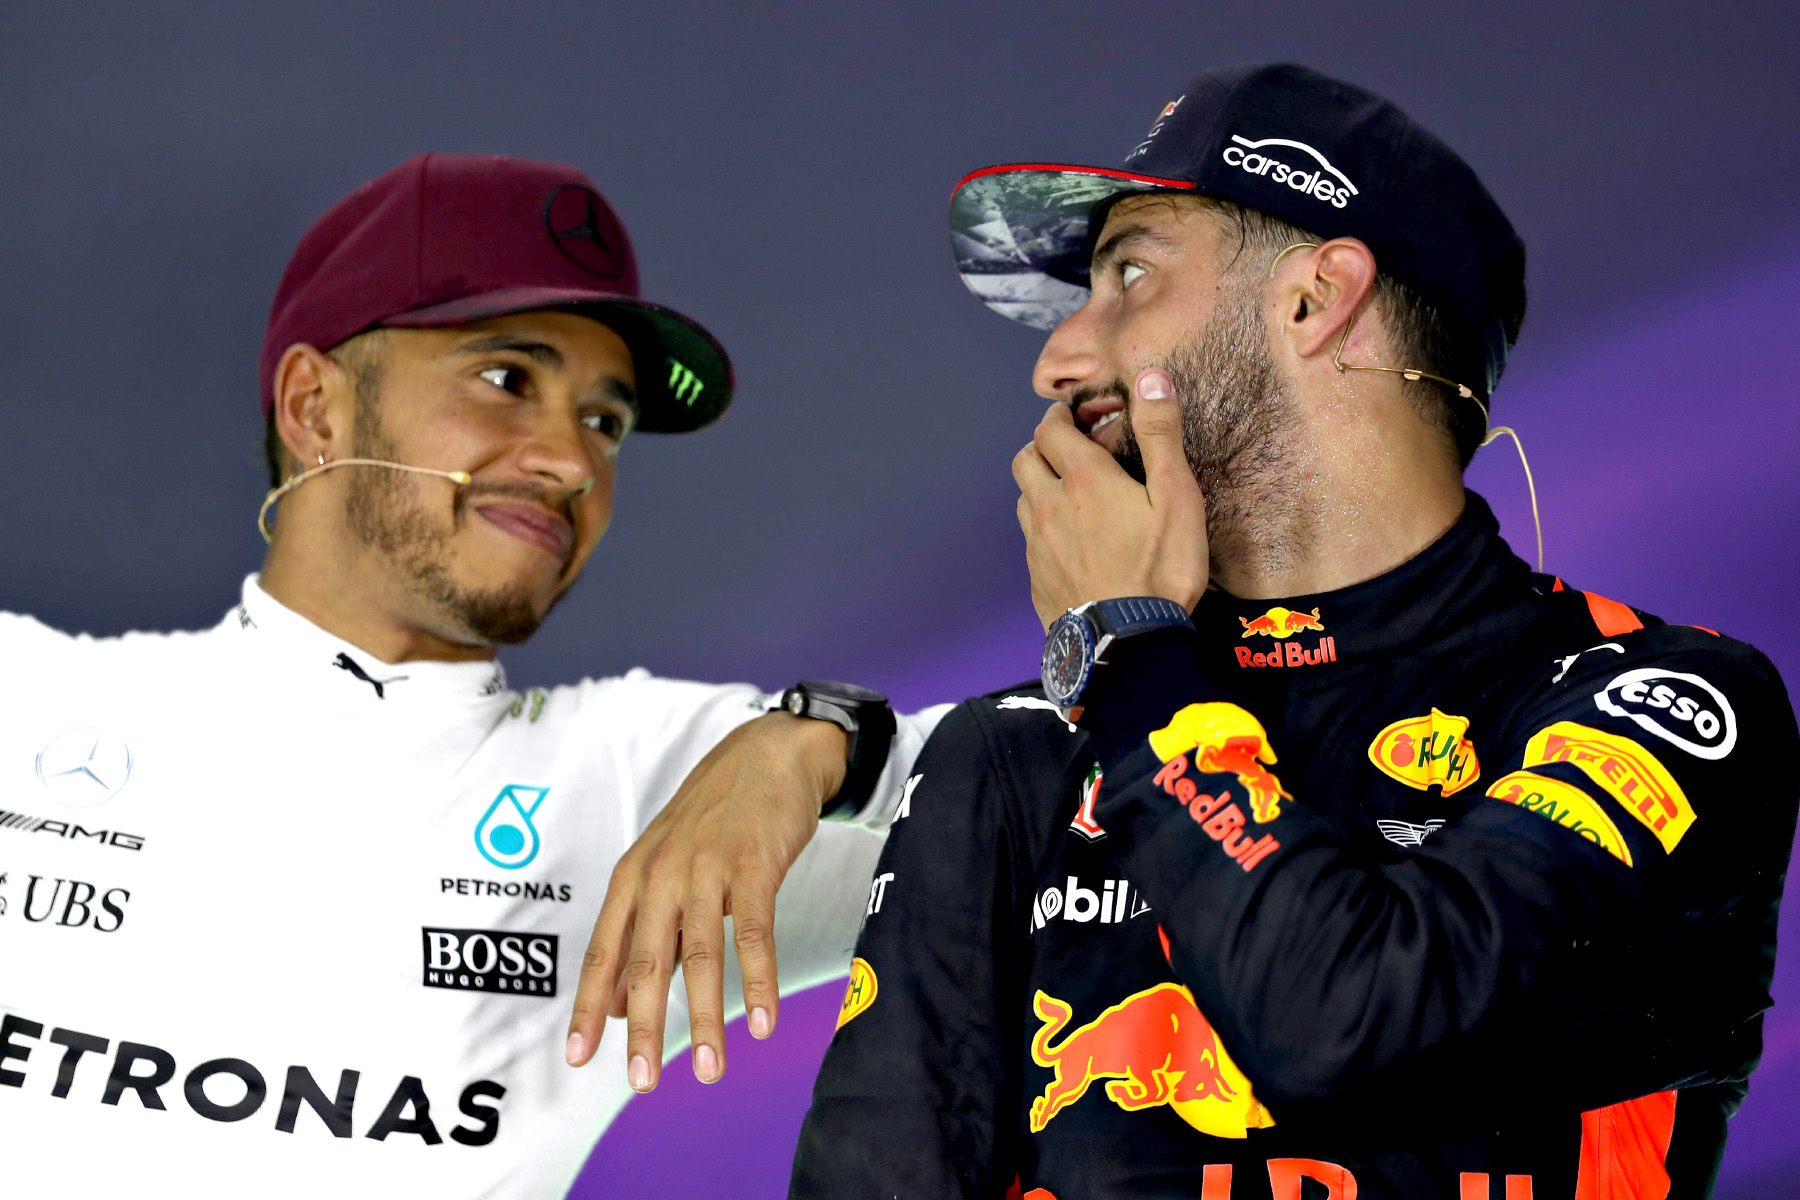 Lewis Hamilton and Daniel Ricciardo talk in an FIA press conference.